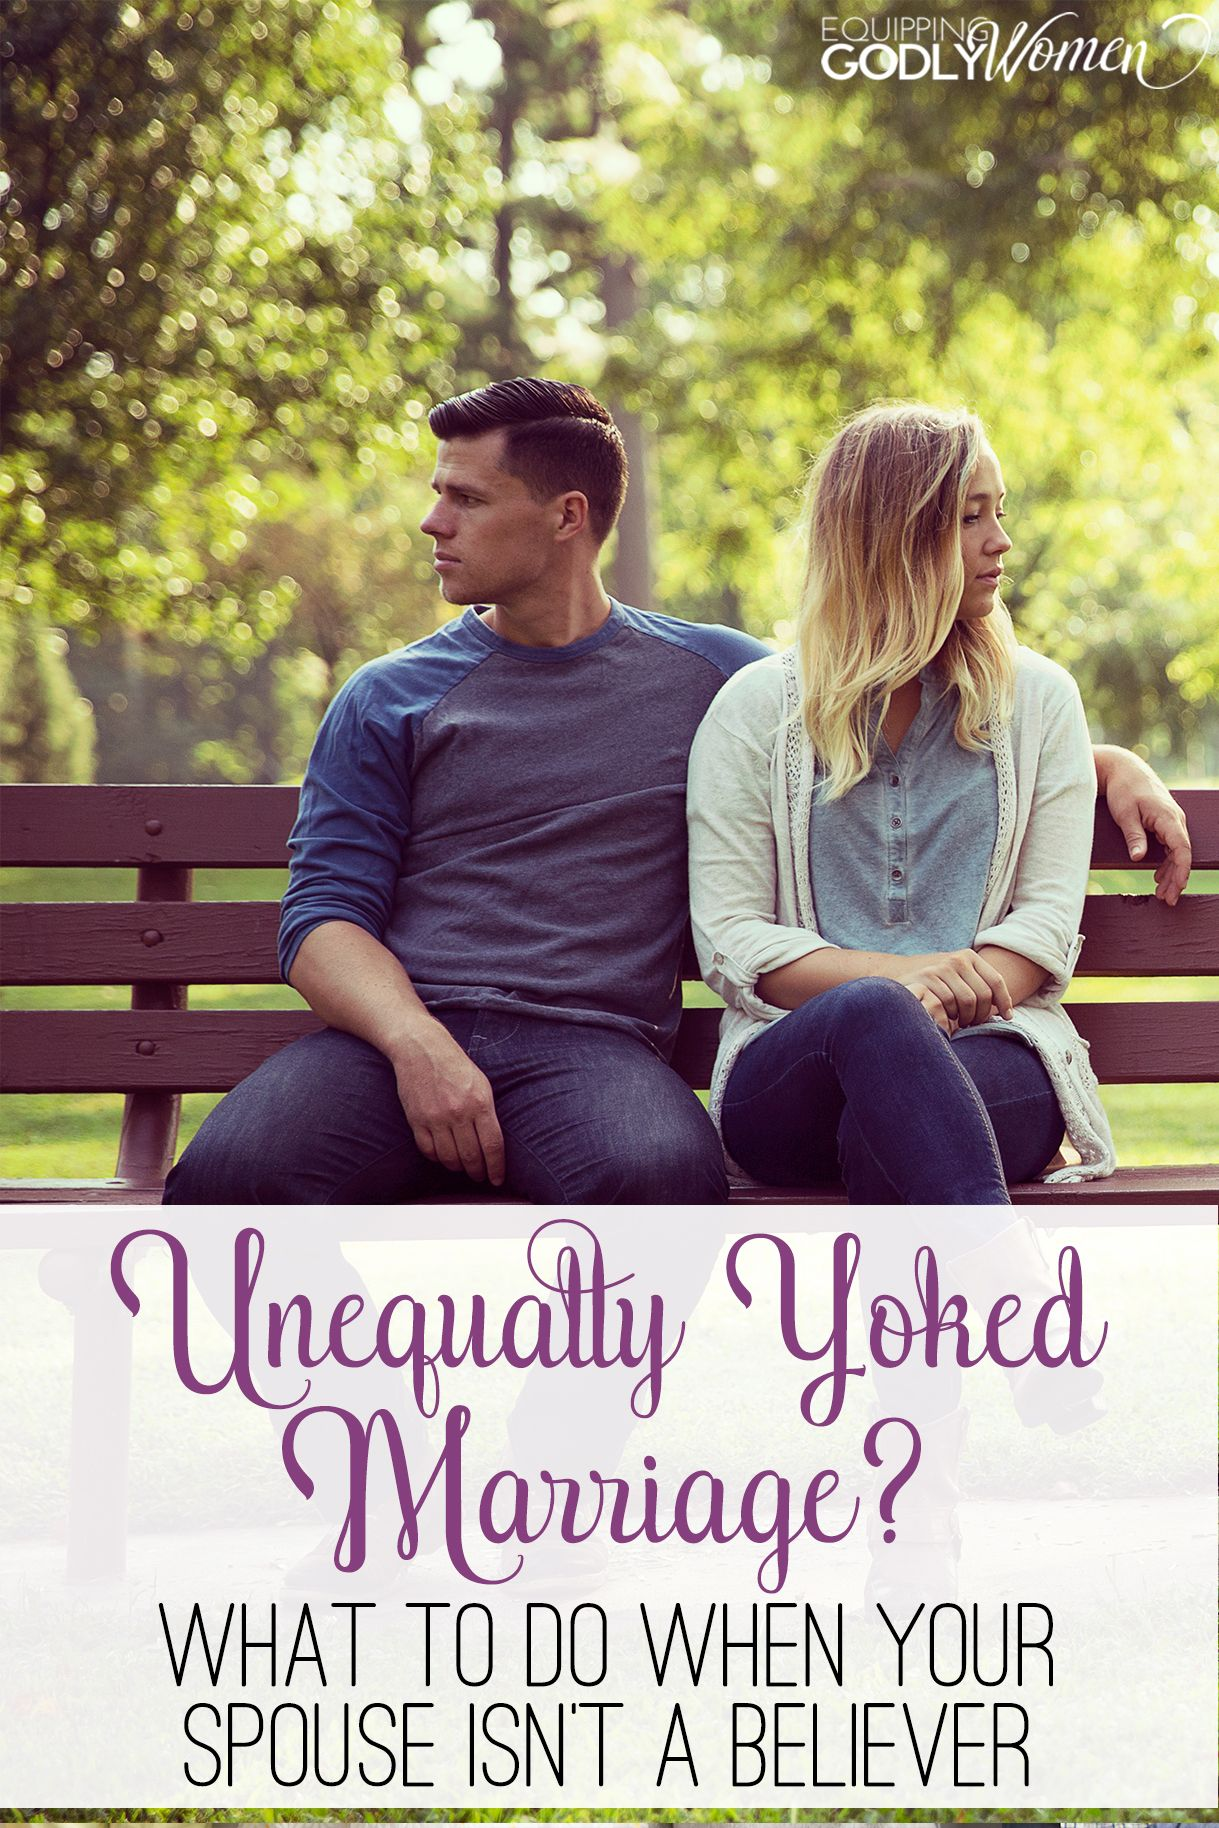 prayers for unequally yoked dating